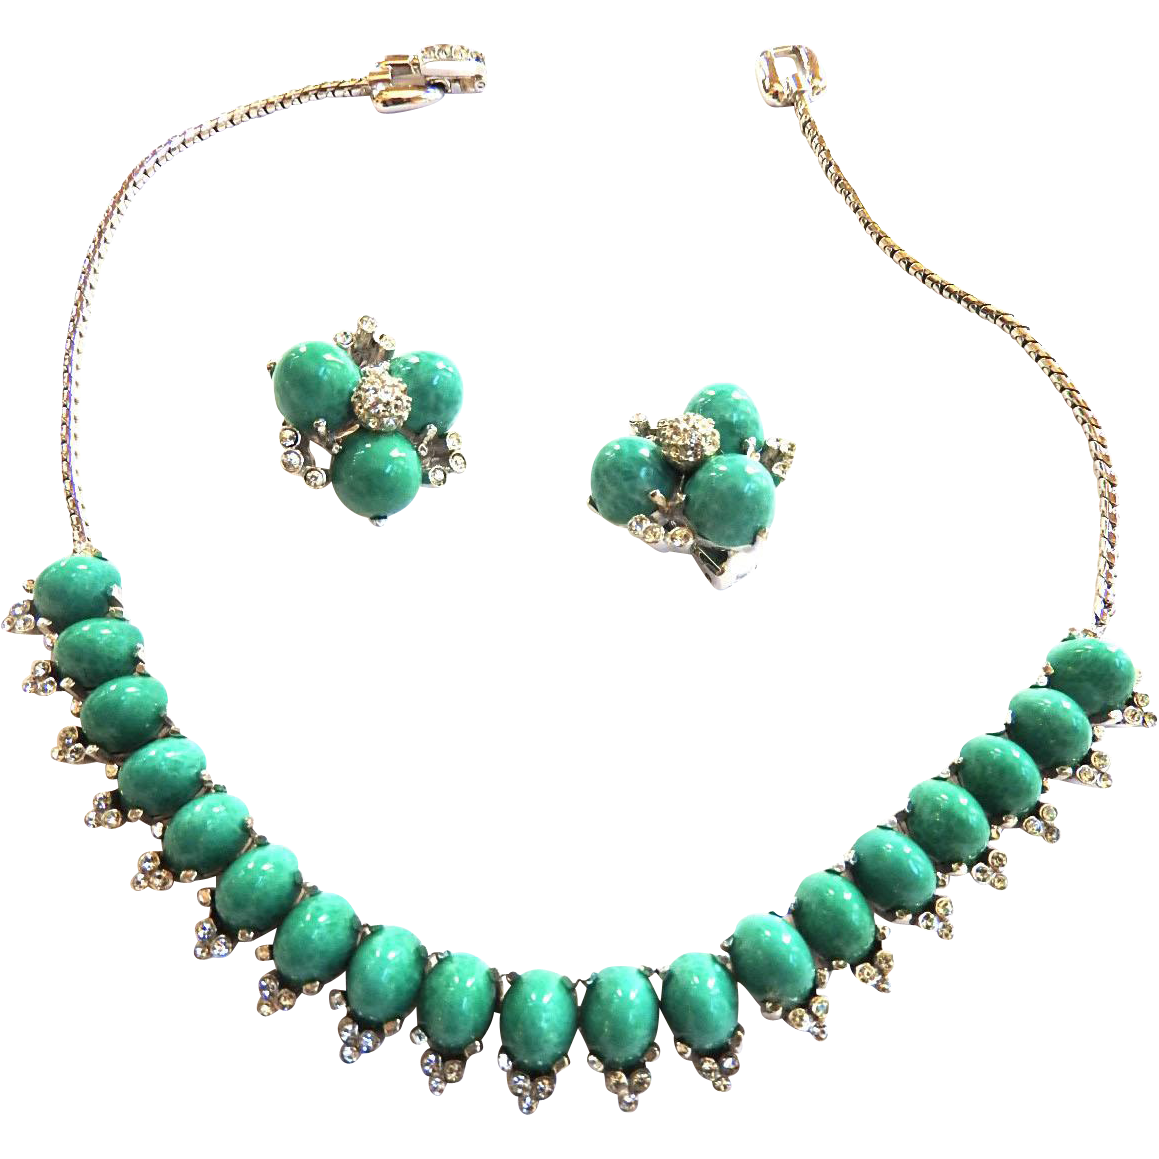 Reya Vintage Matrix Faux Turquoise Necklace and Earrings